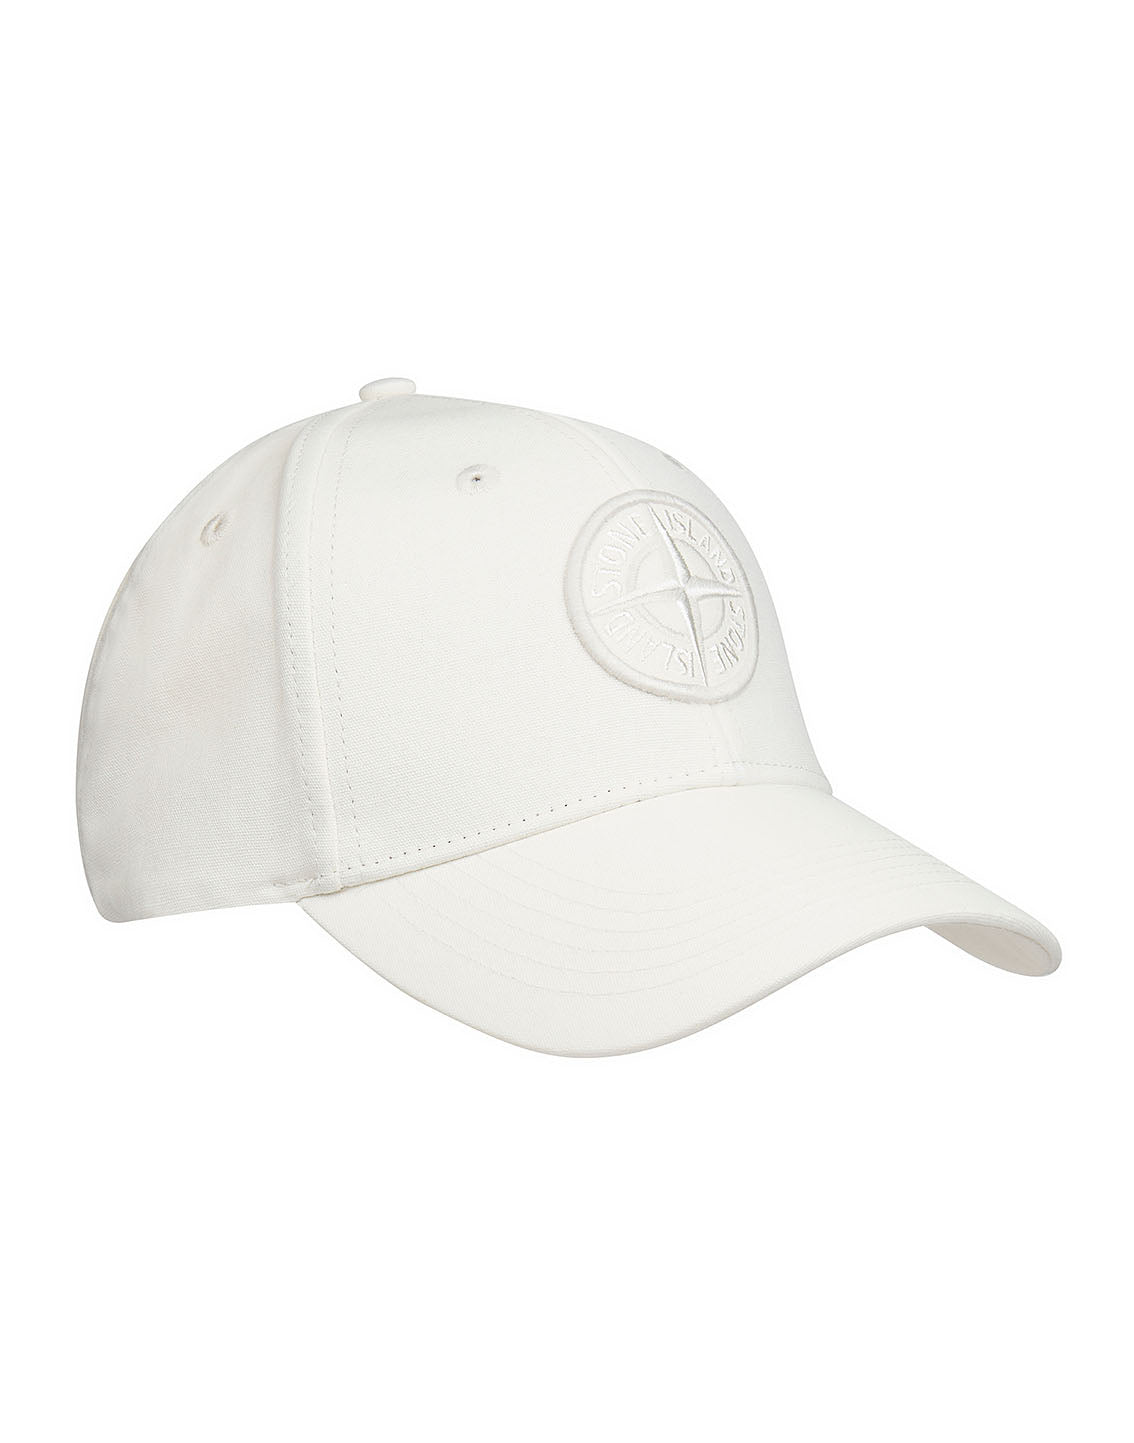 99168 Hat in Ivory